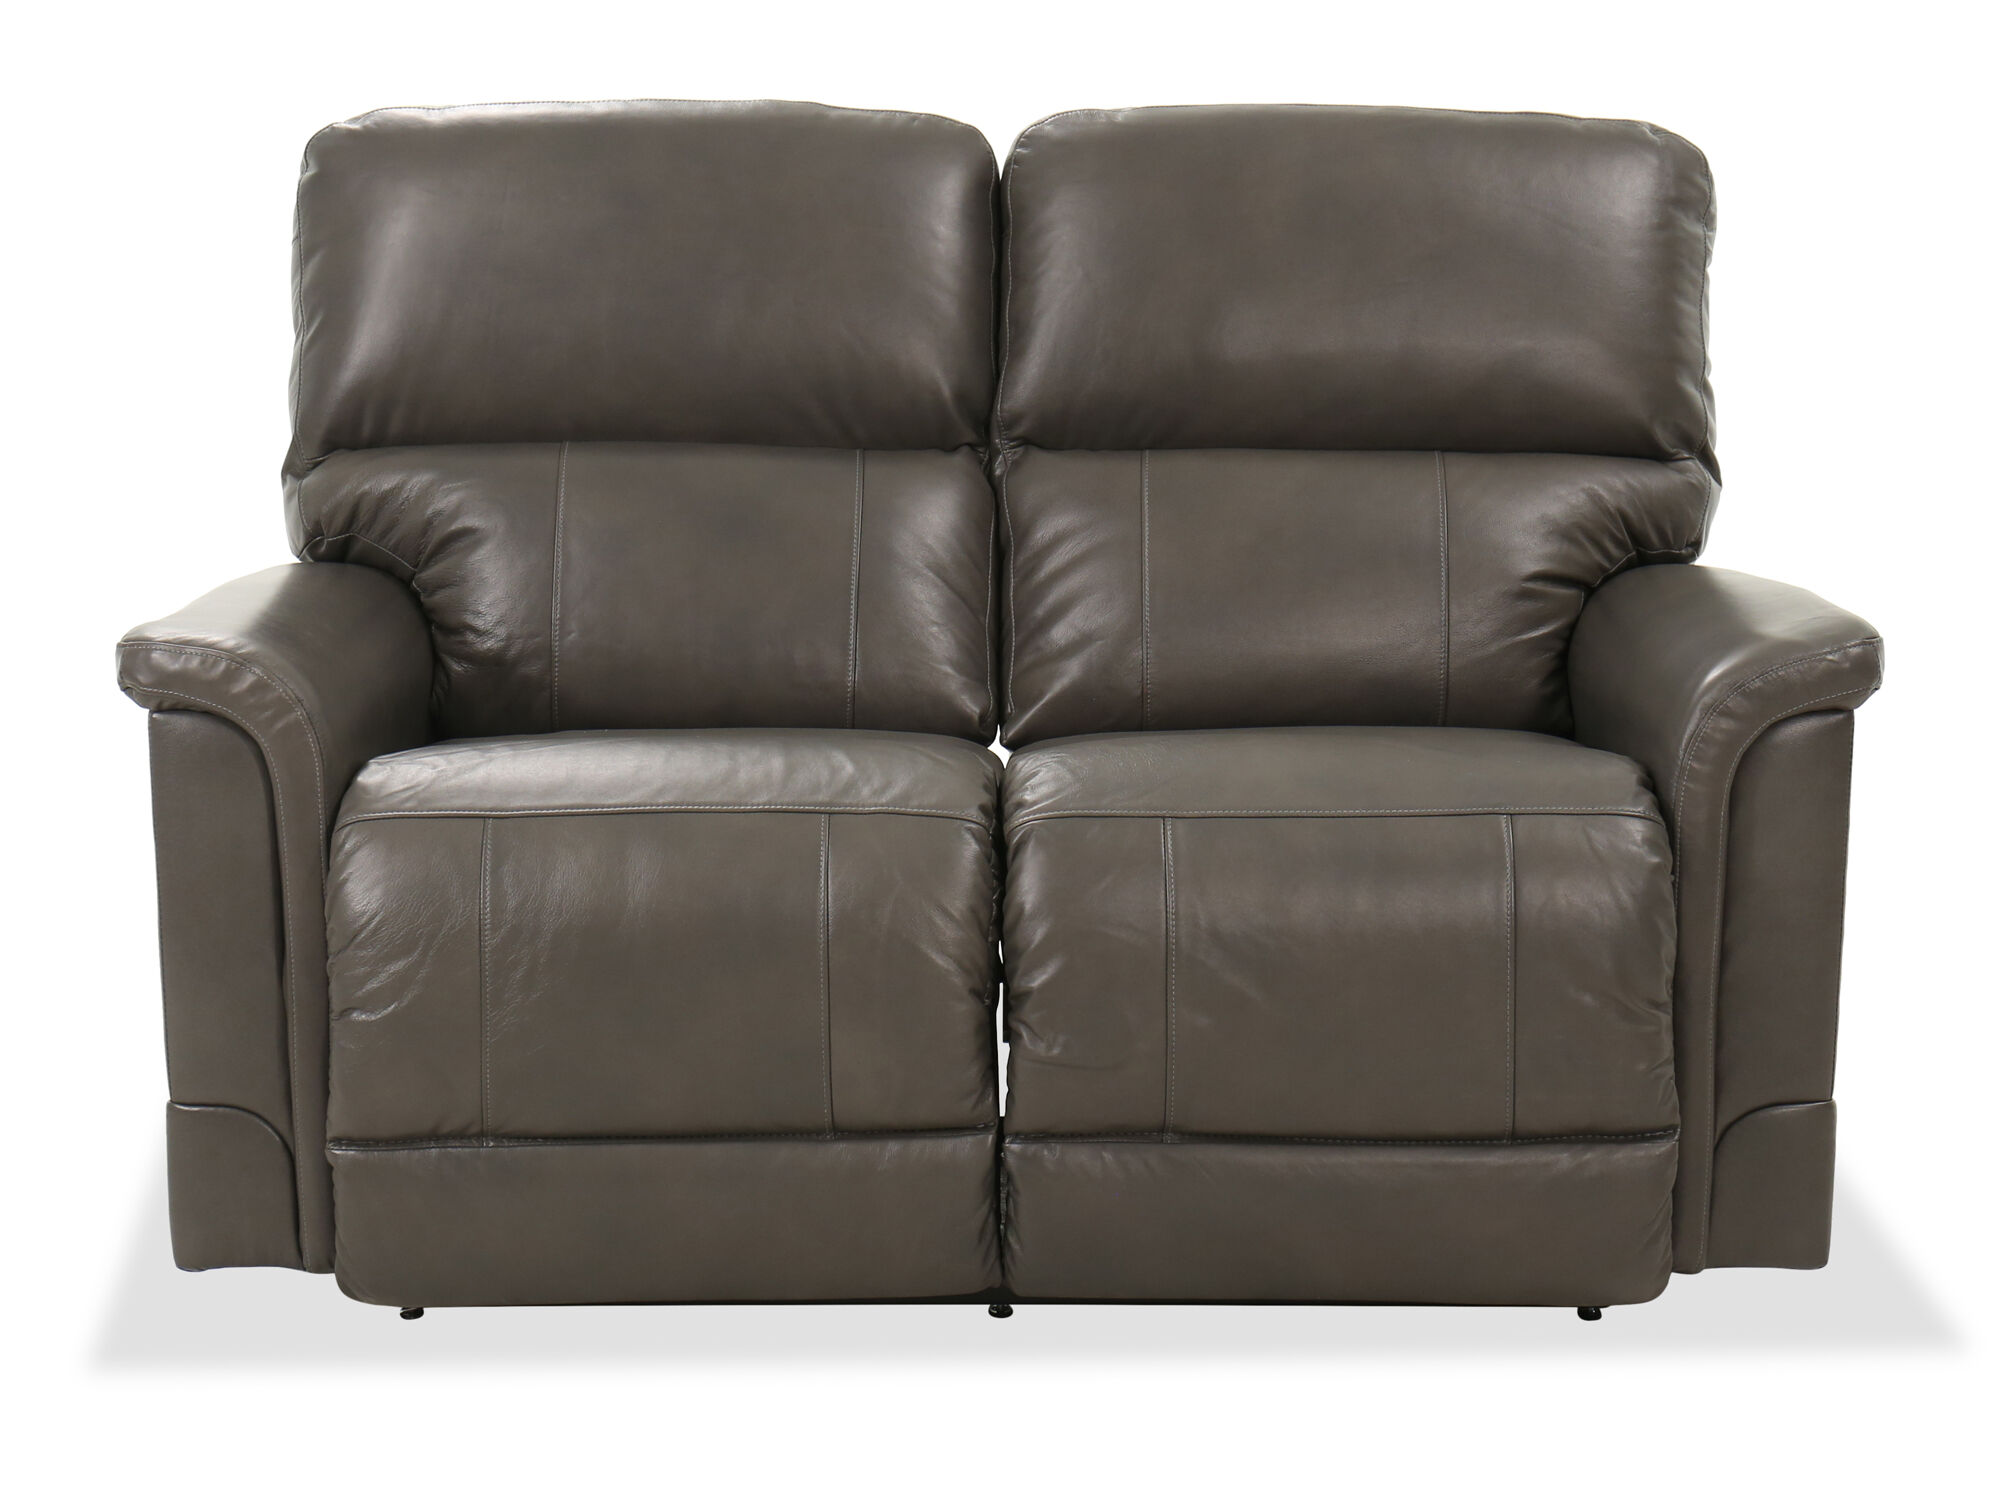 Leather 62 power reclining loveseat in gray mathis brothers furniture